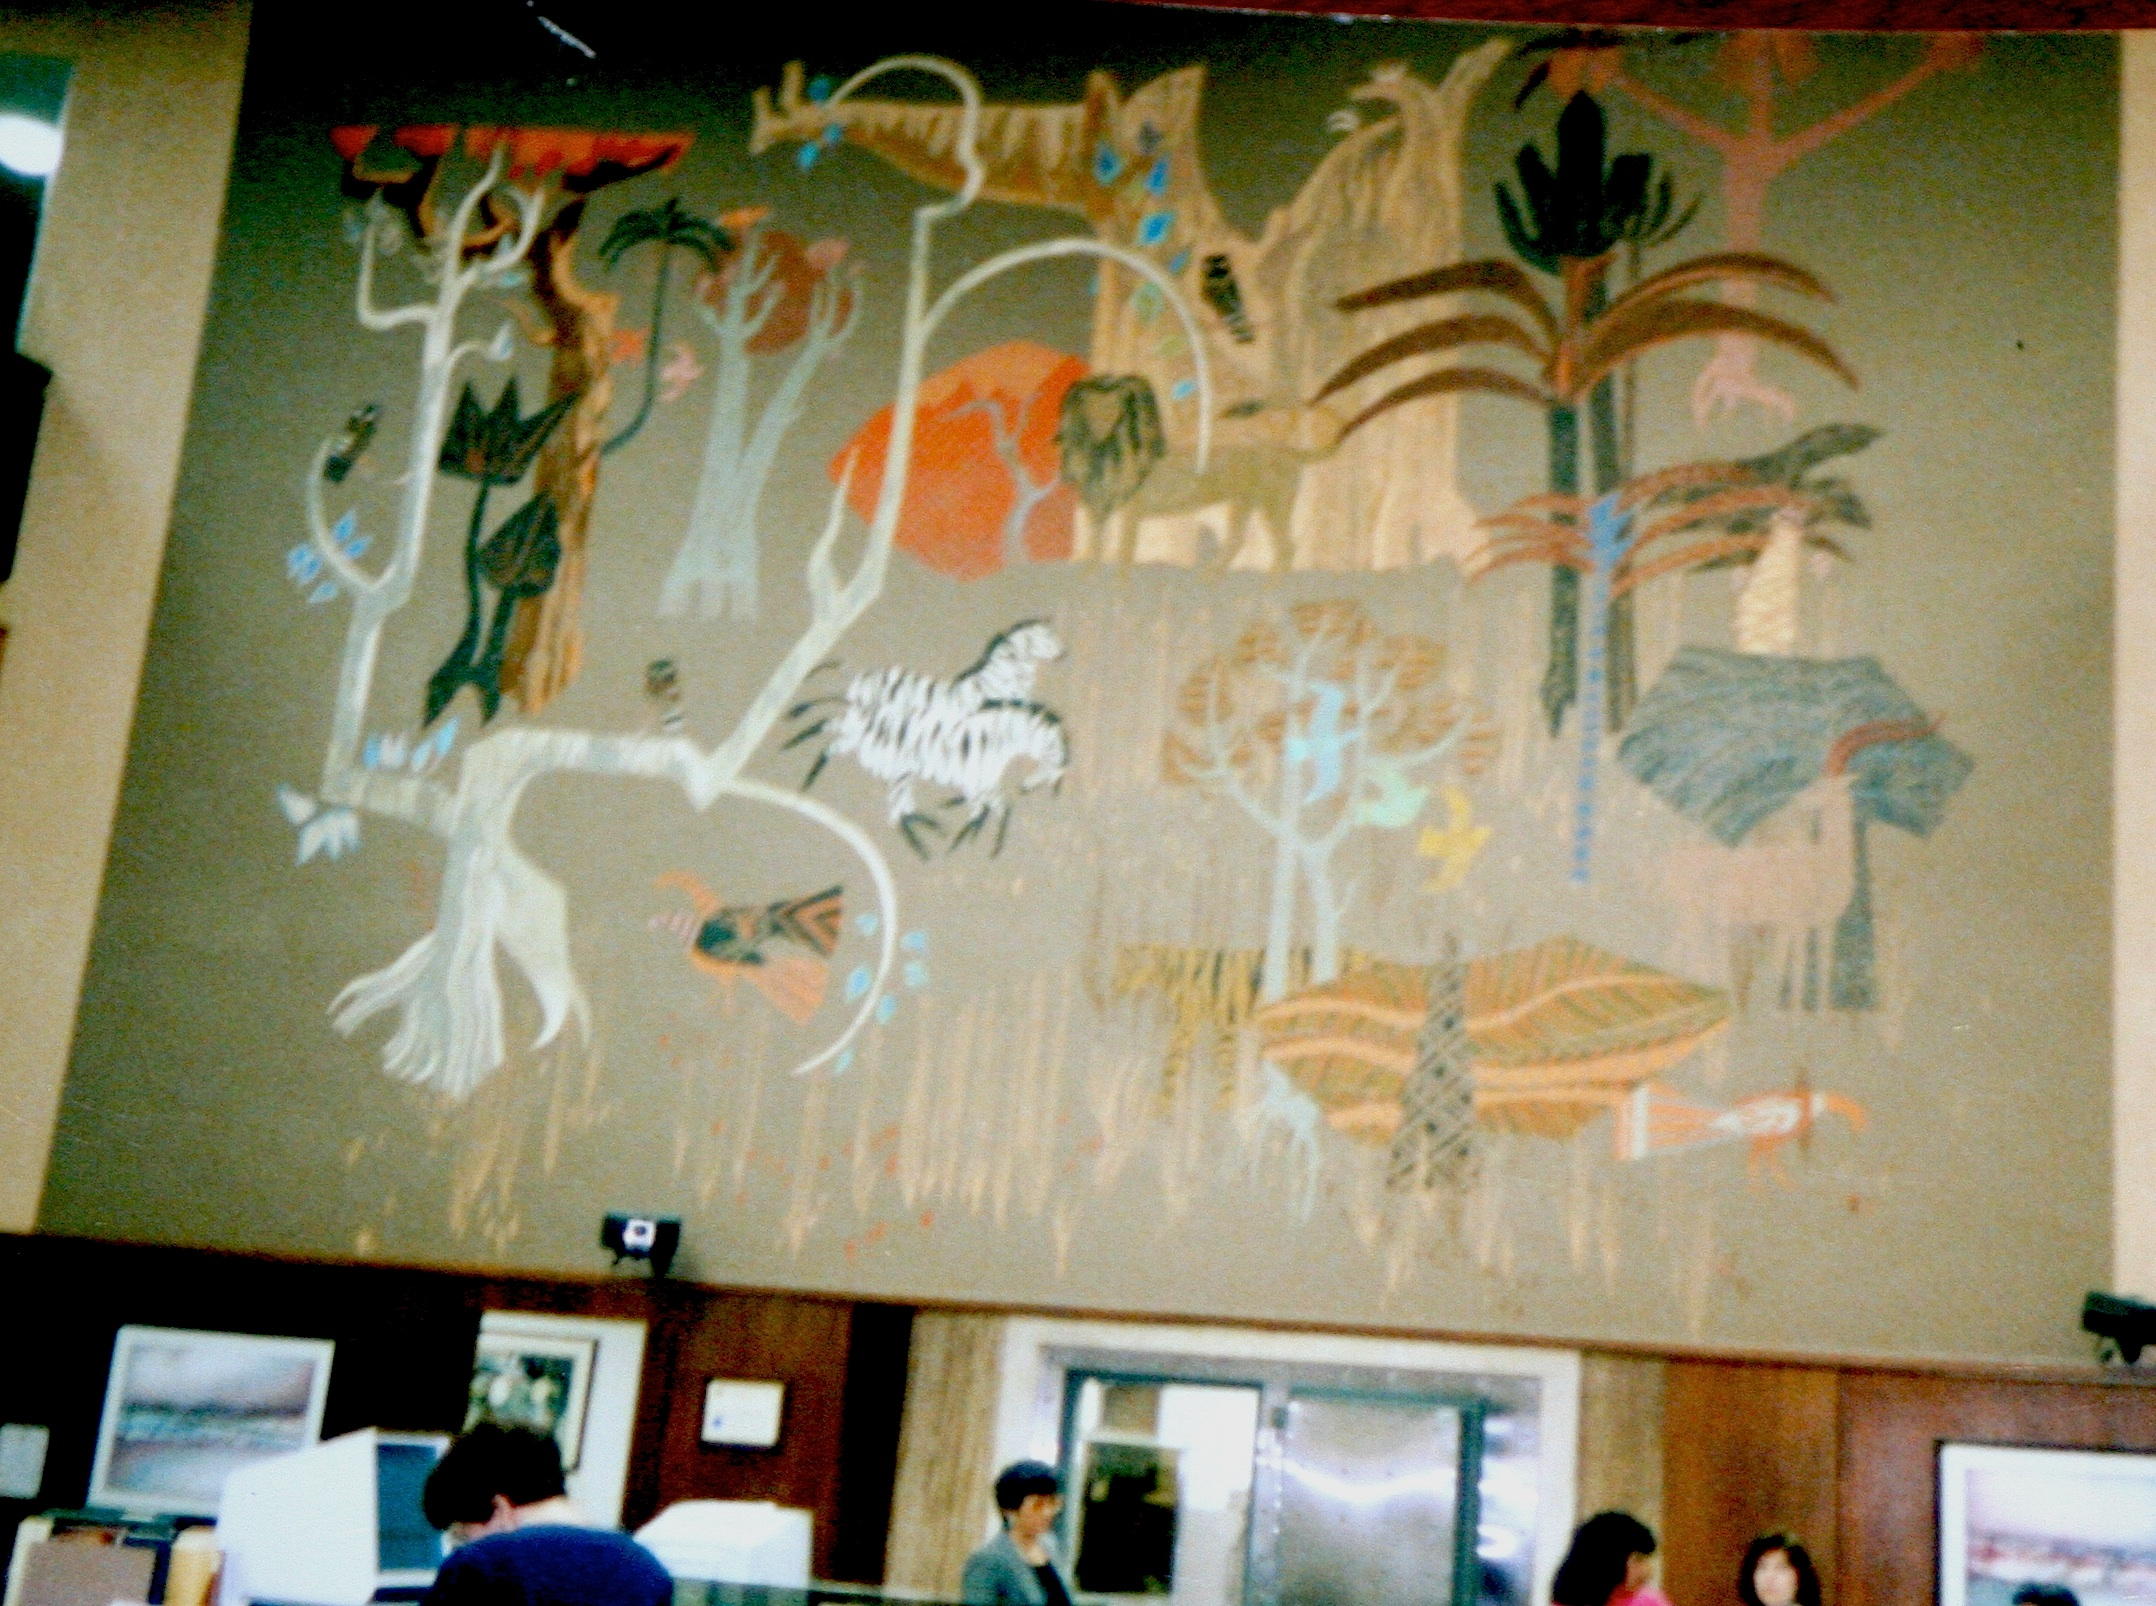 LA Zoo painting, Burbank branch, 1969. Photo courtesy of Carrie McCoy